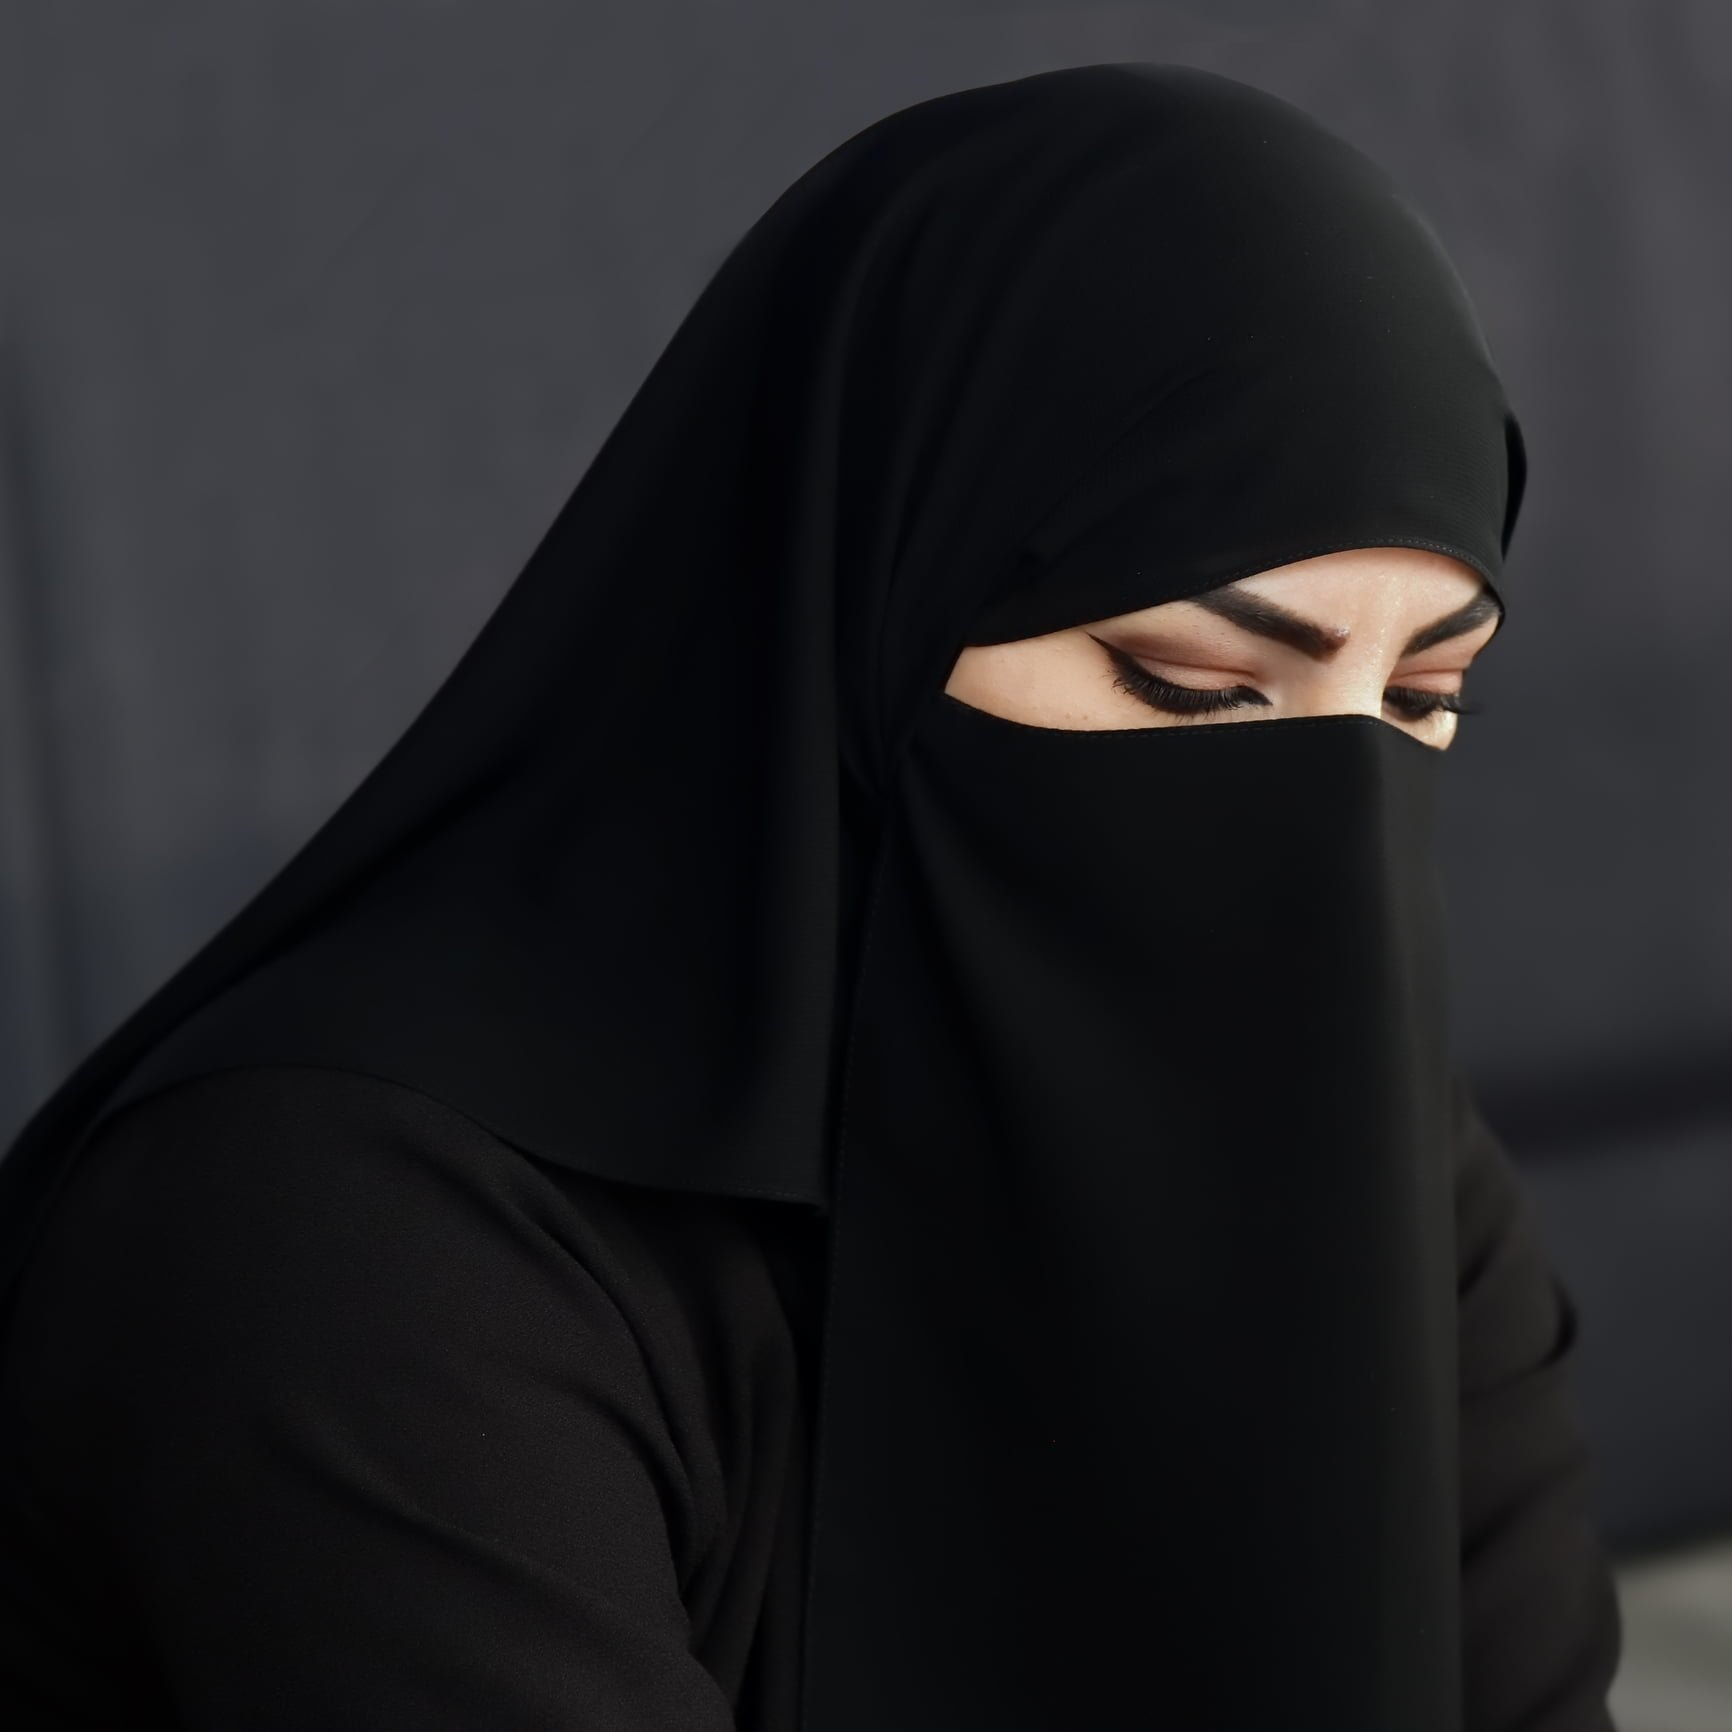 Saudi Men Tired of Being Treated Like Saudi Women